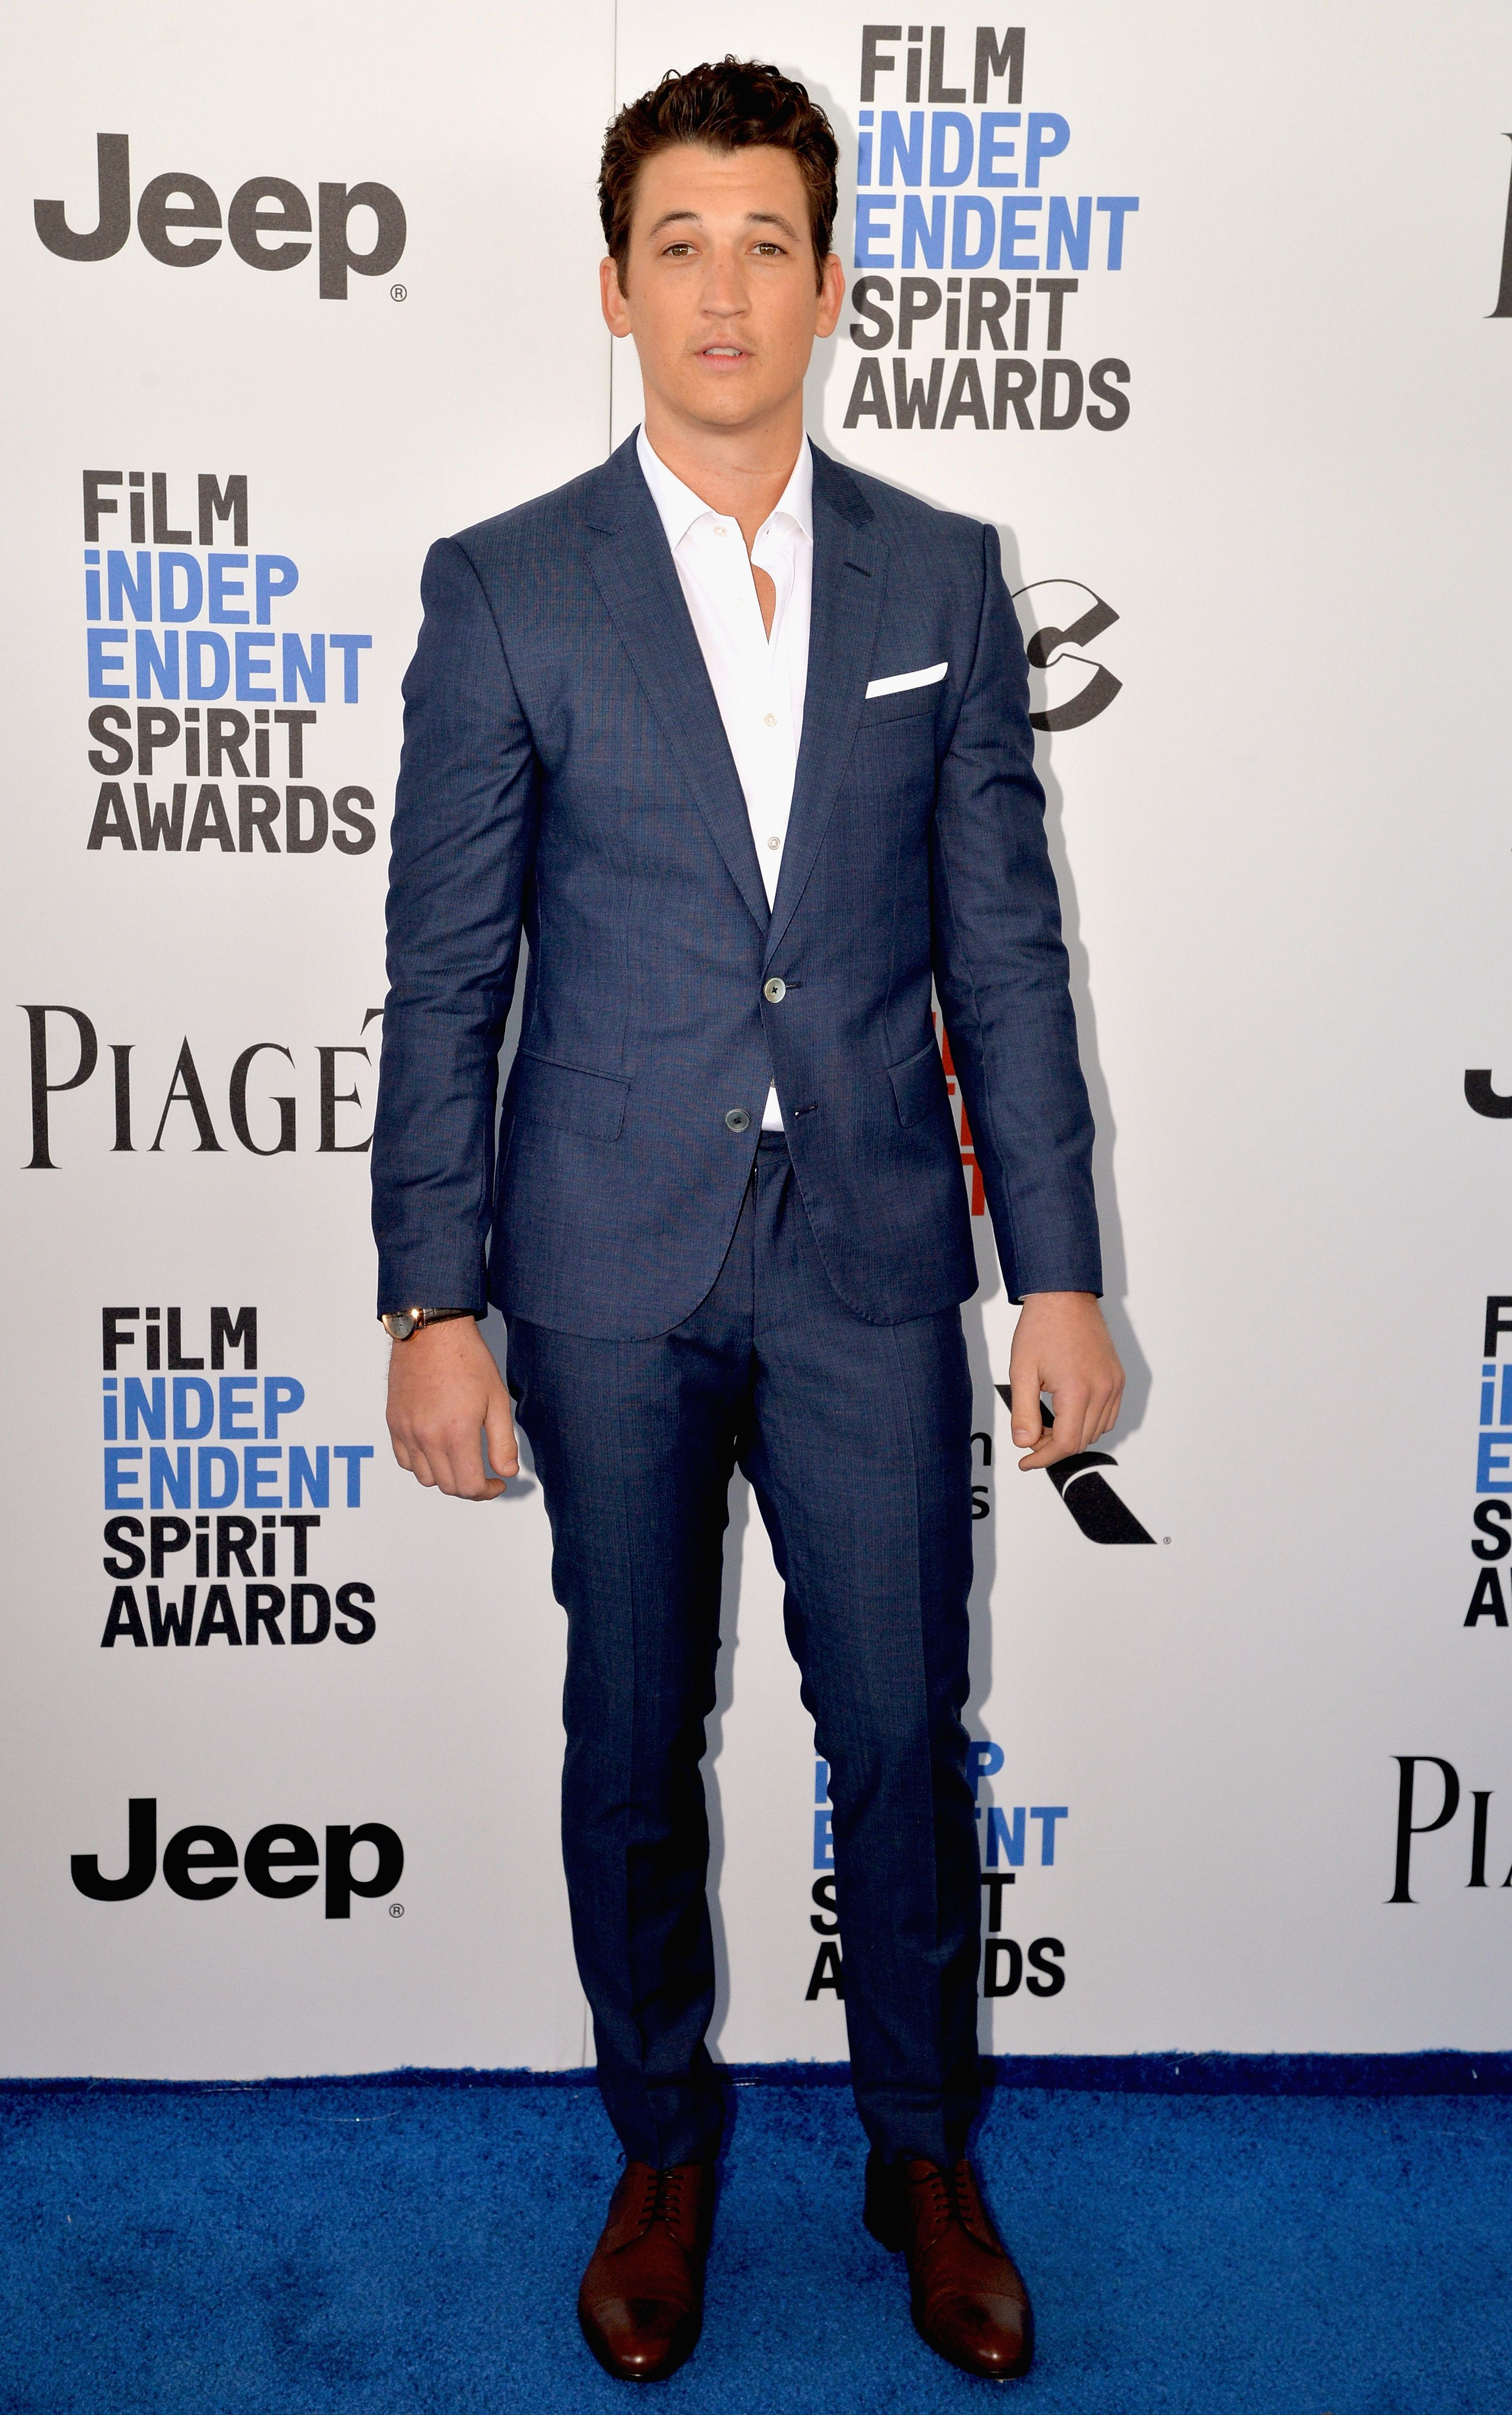 At the Independent Spirit Awards in Santa Monica, Miles